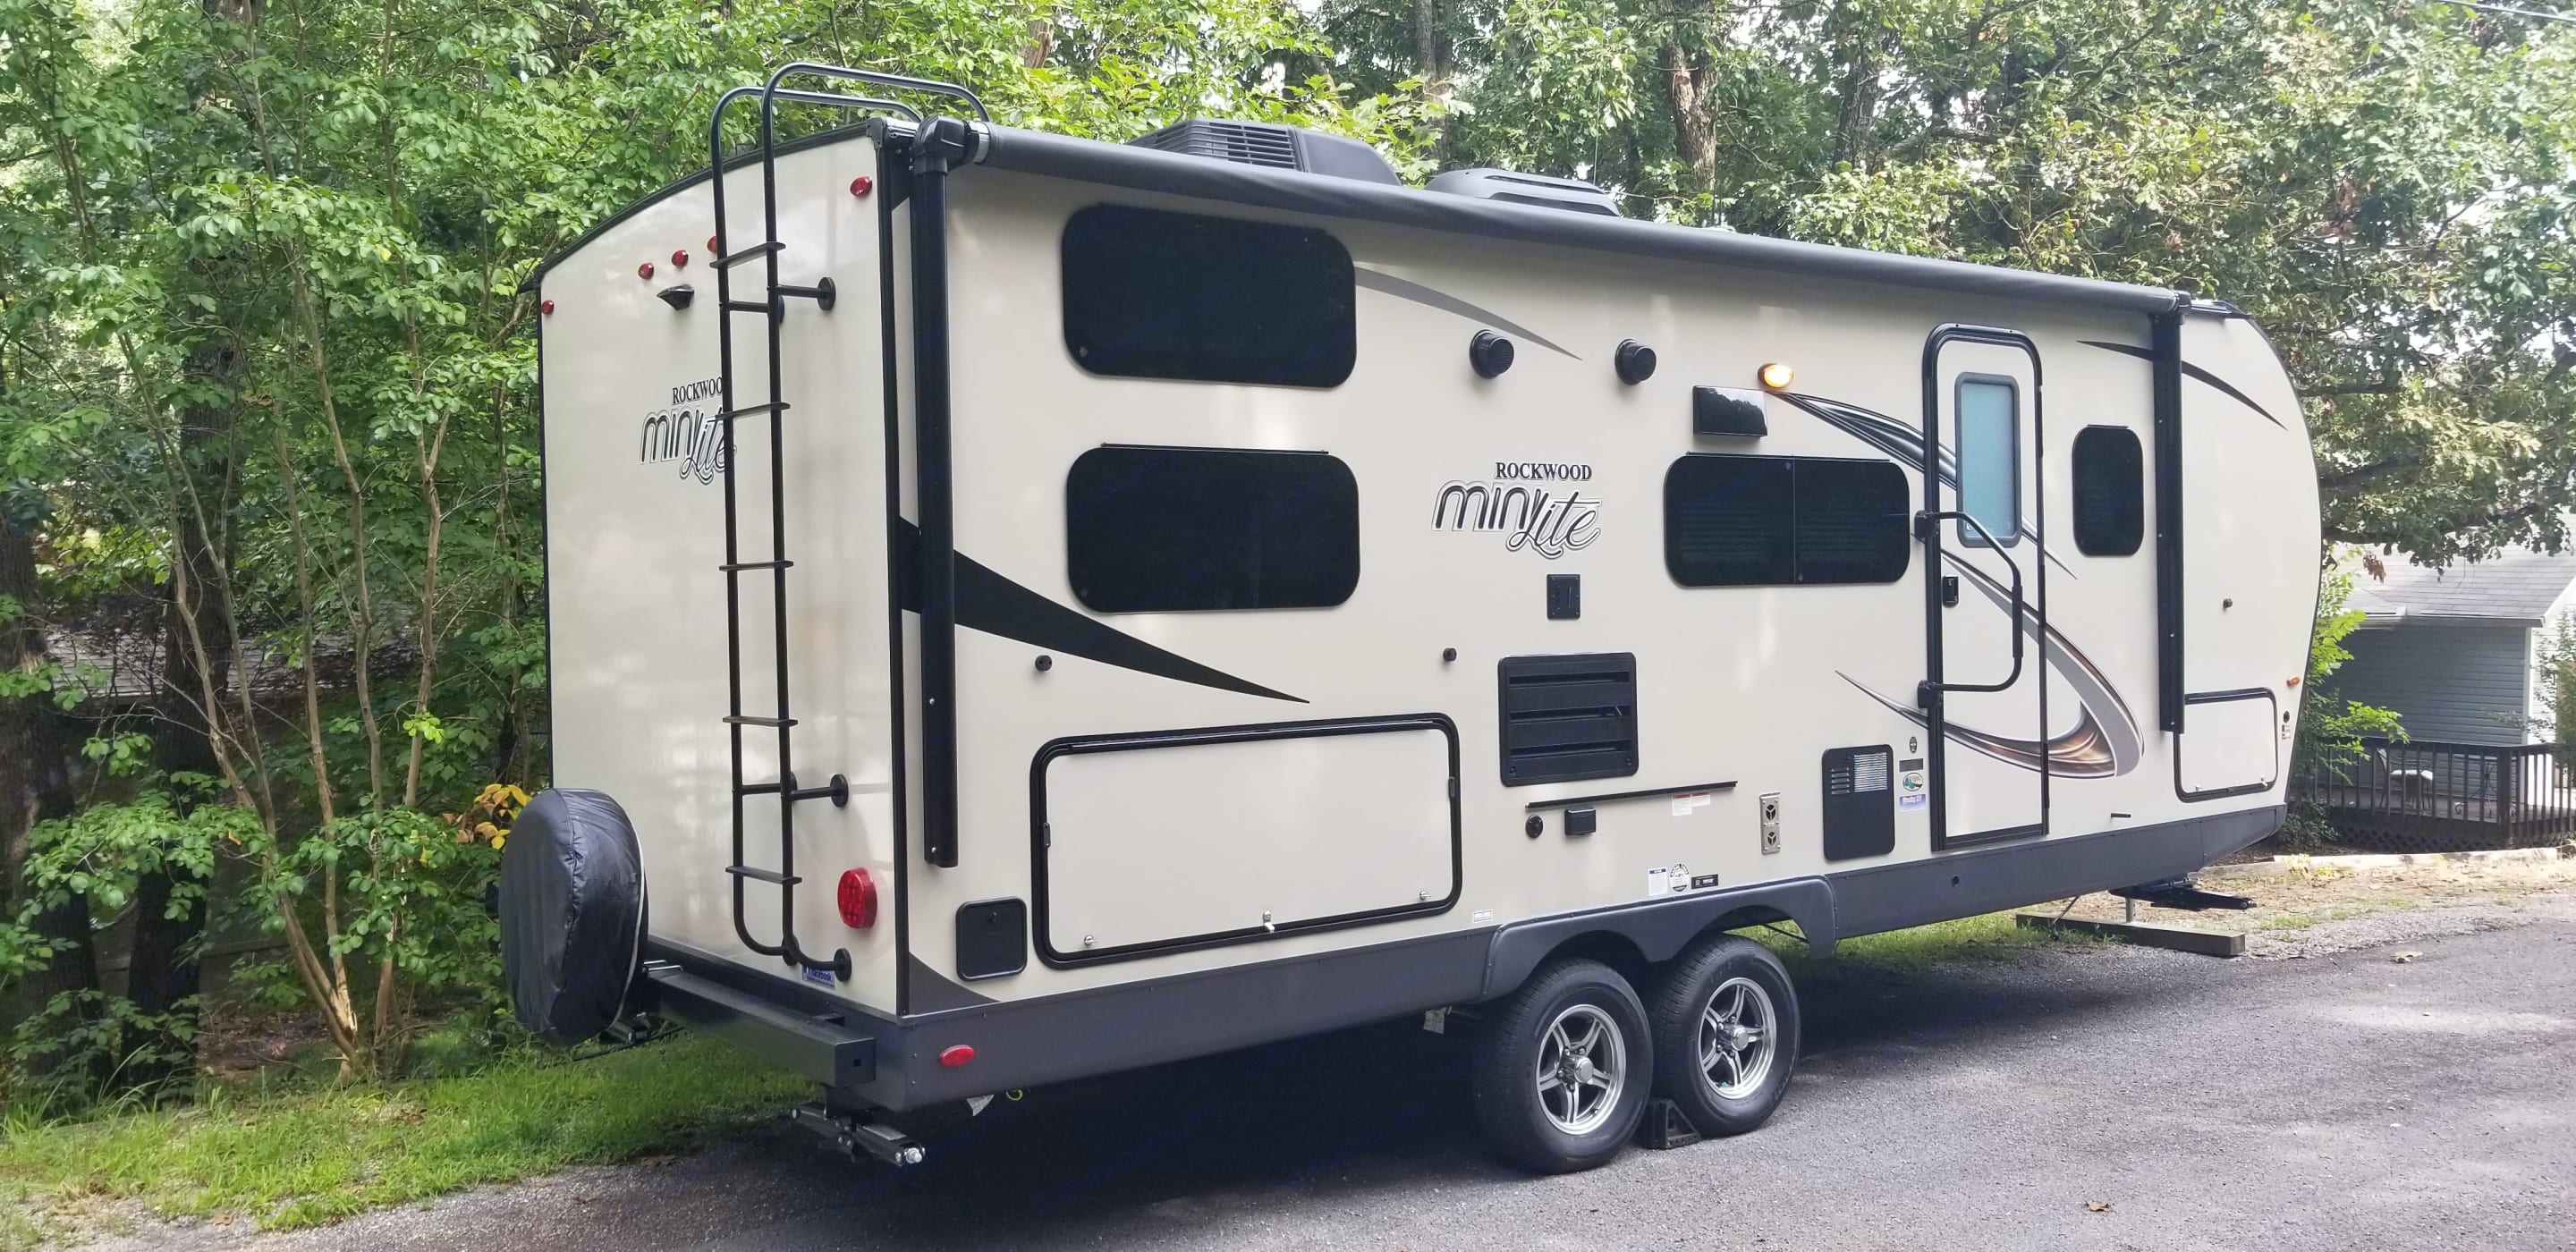 Small, easy to tow! Feels much bigger than it looks with slide out and murphy bed. . Forest River Rockwood Mini Lite 2019